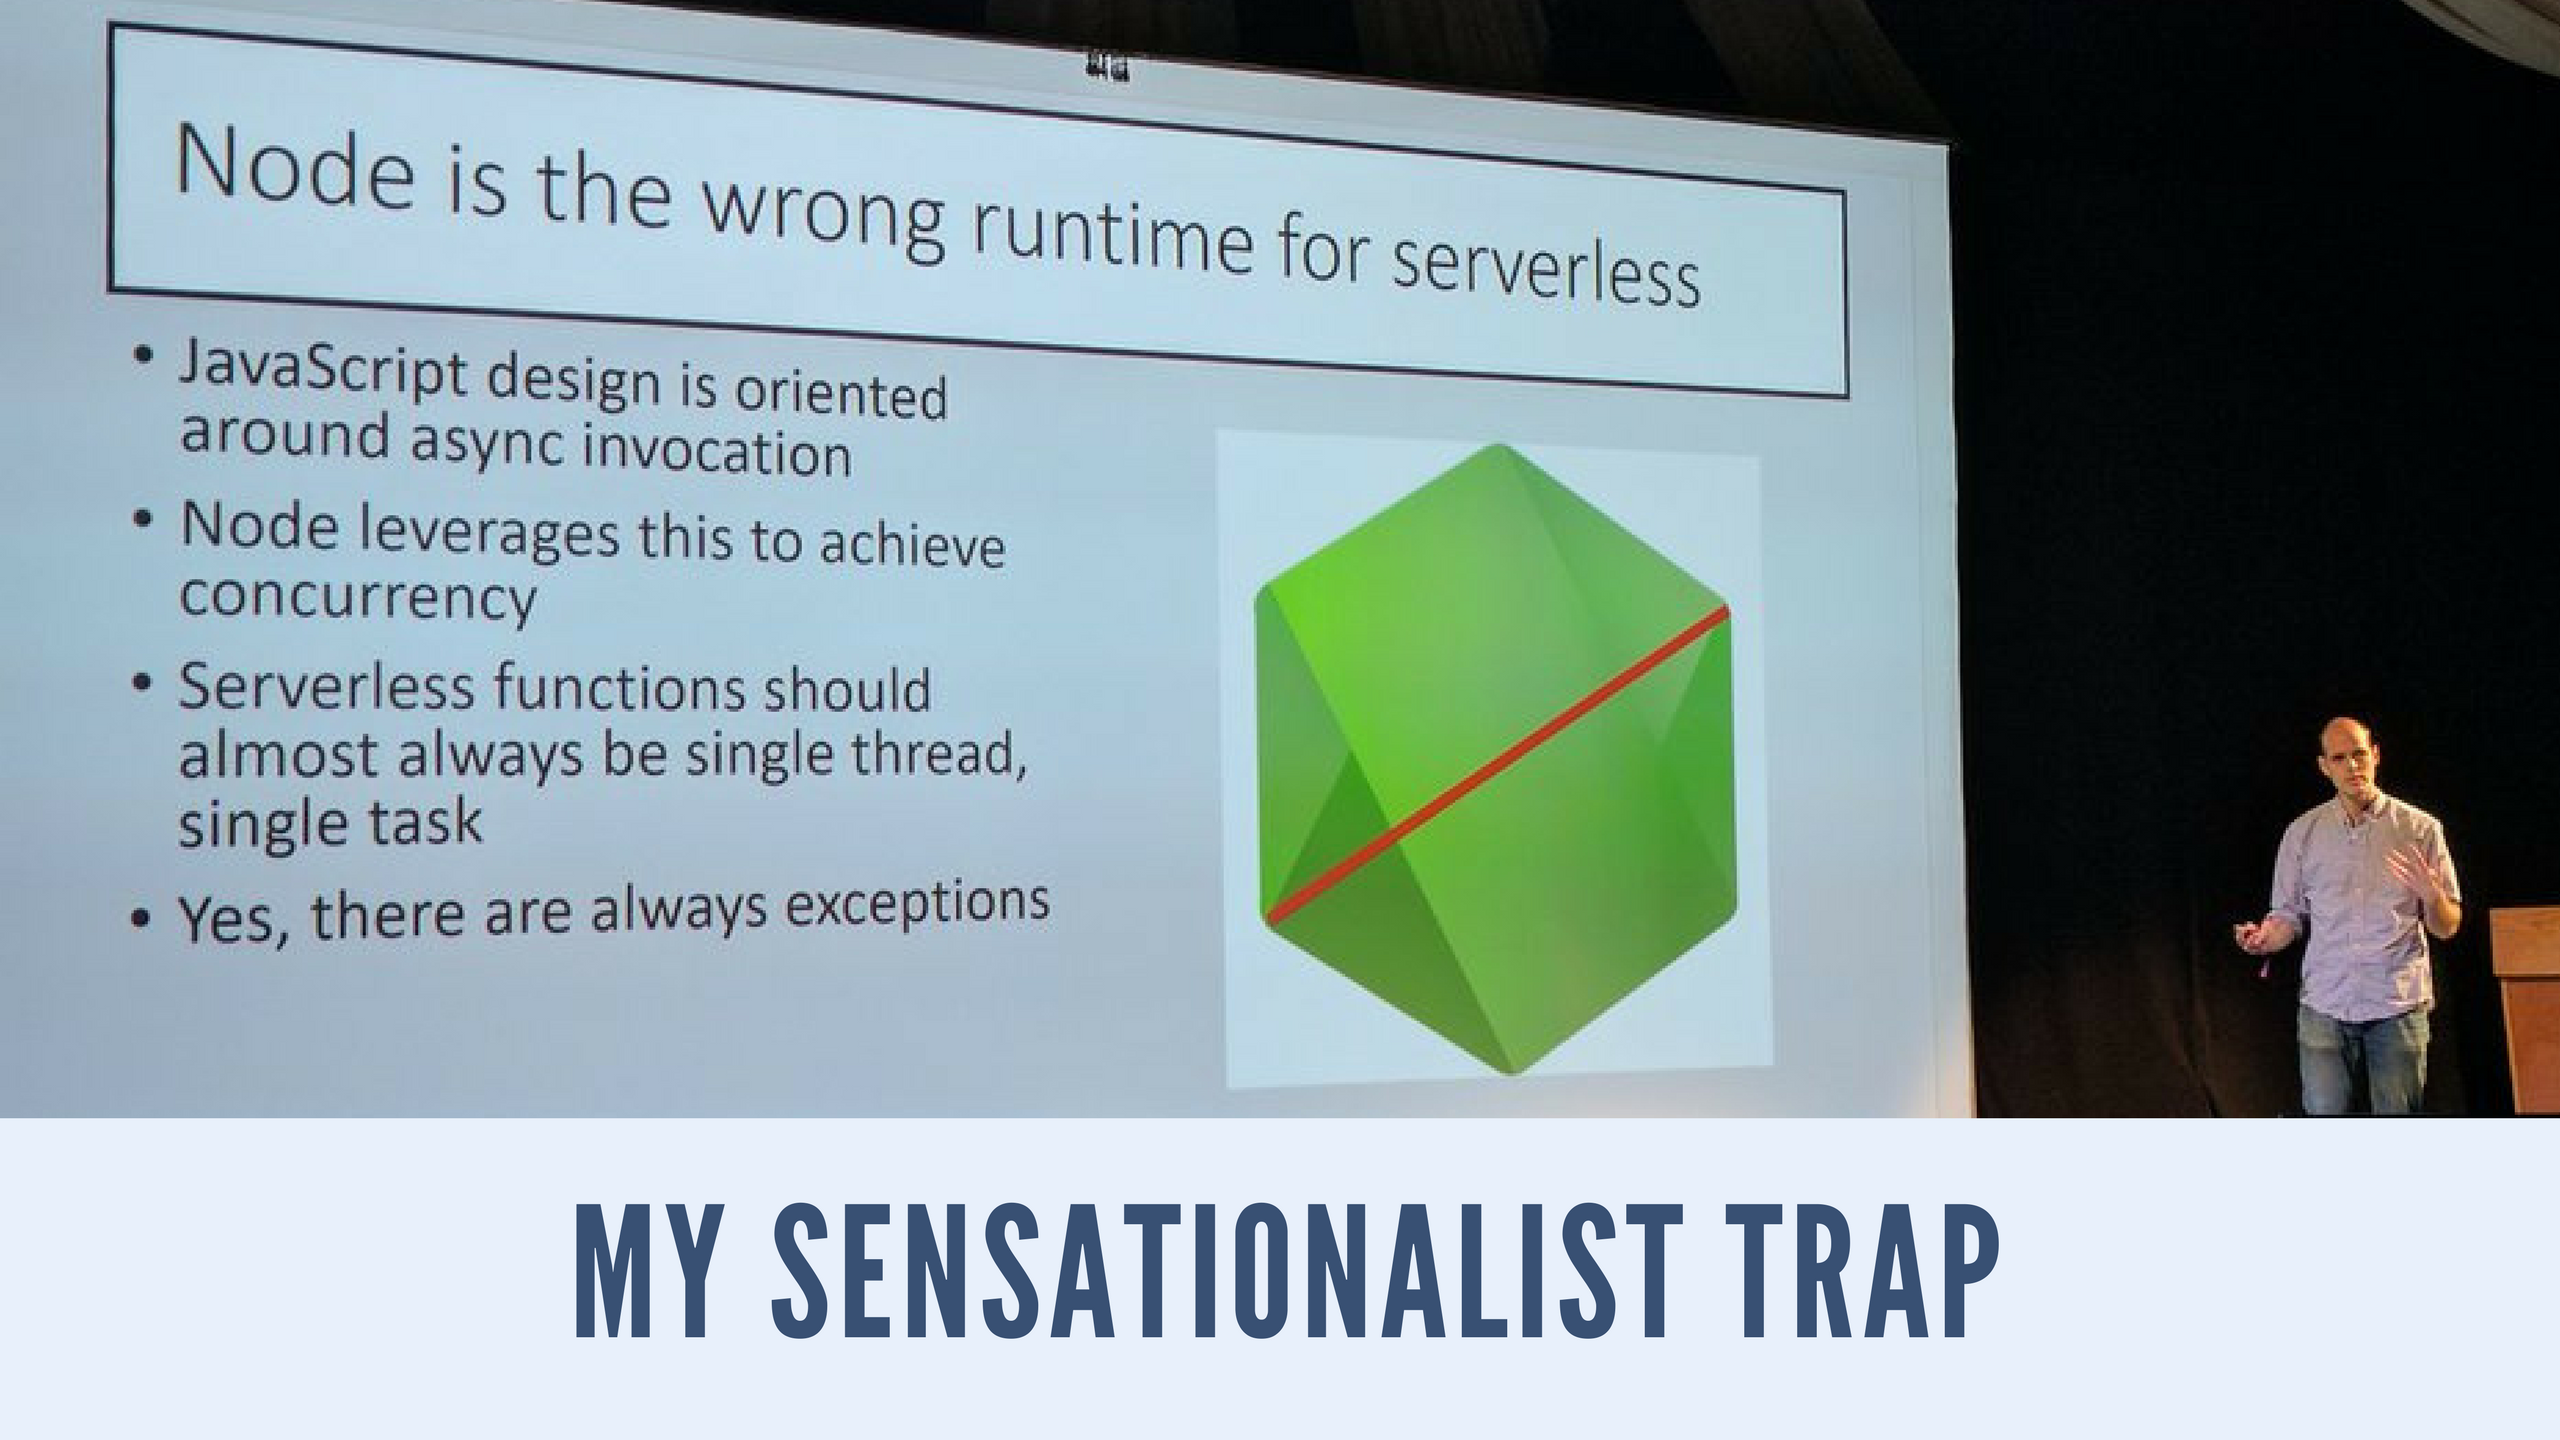 Node is the wrong runtime for serverless.